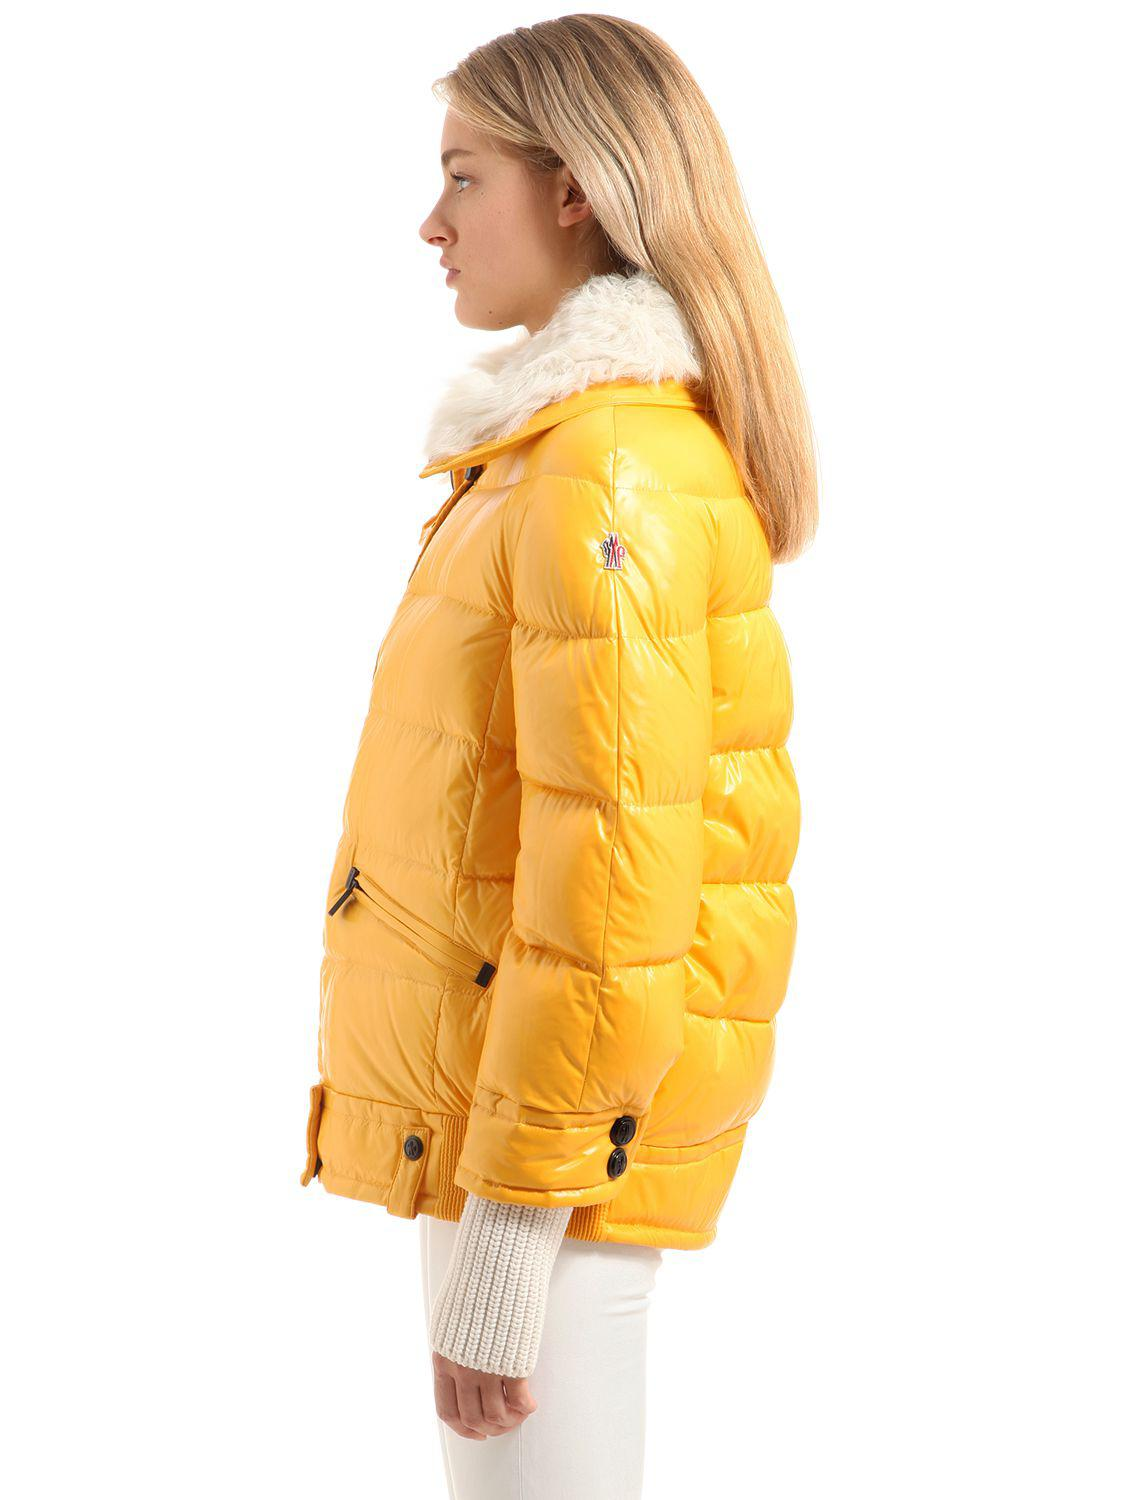 Lyst Moncler Grenoble Arabba Nylon Amp Shearling Down